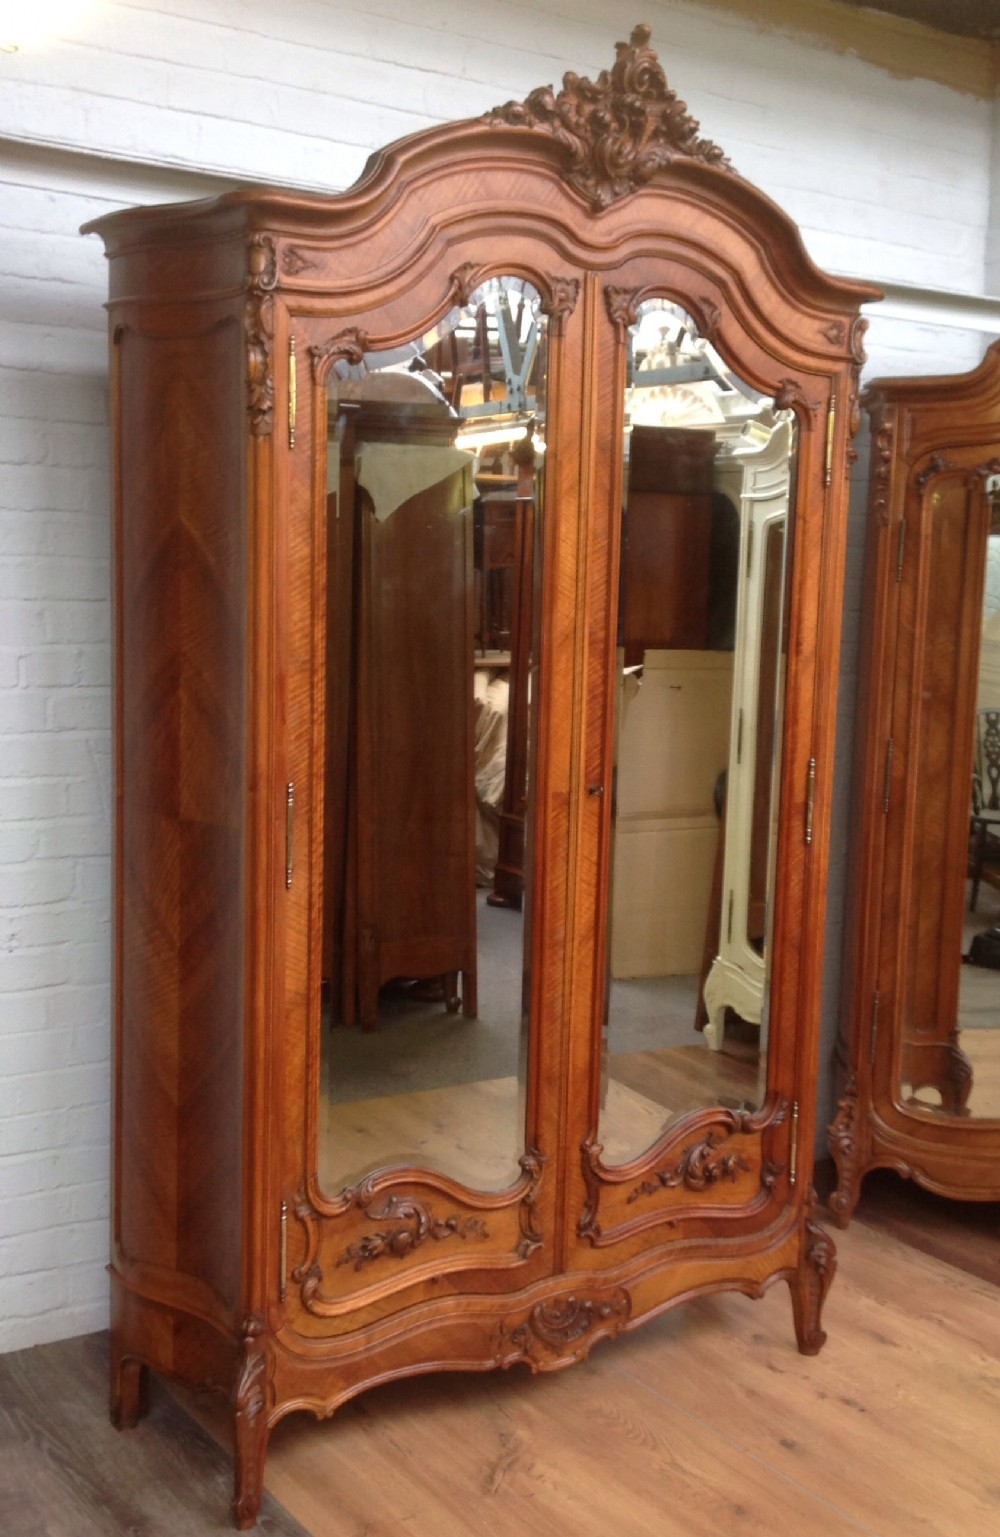 Antique french walnut armoire with carved doors 287475 for French doors for sale uk